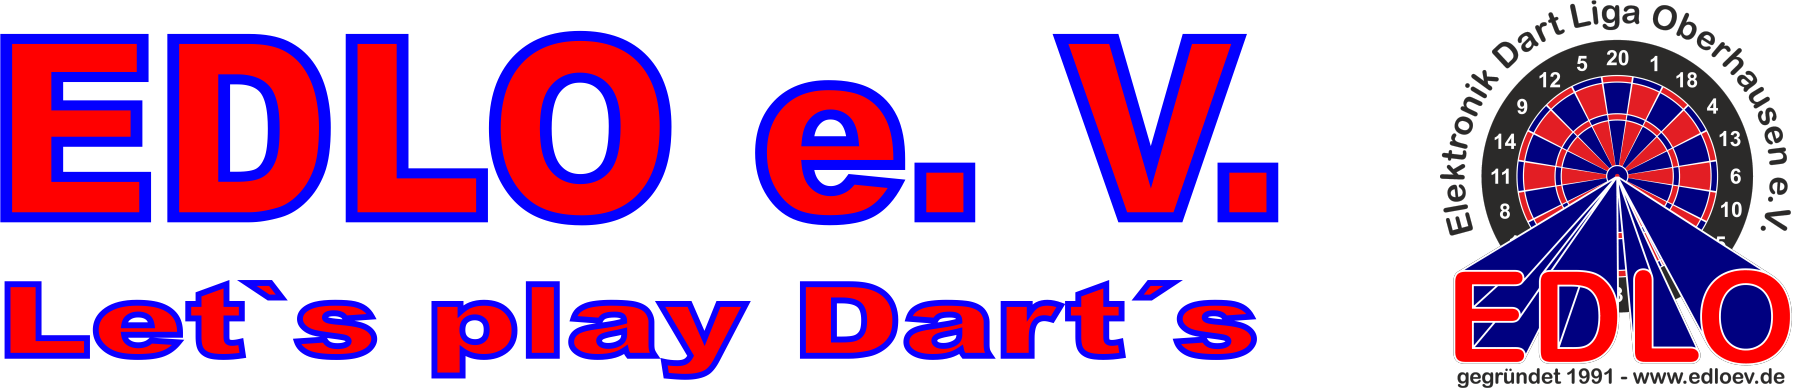 Let´s play Darts! - EDLO e.V.